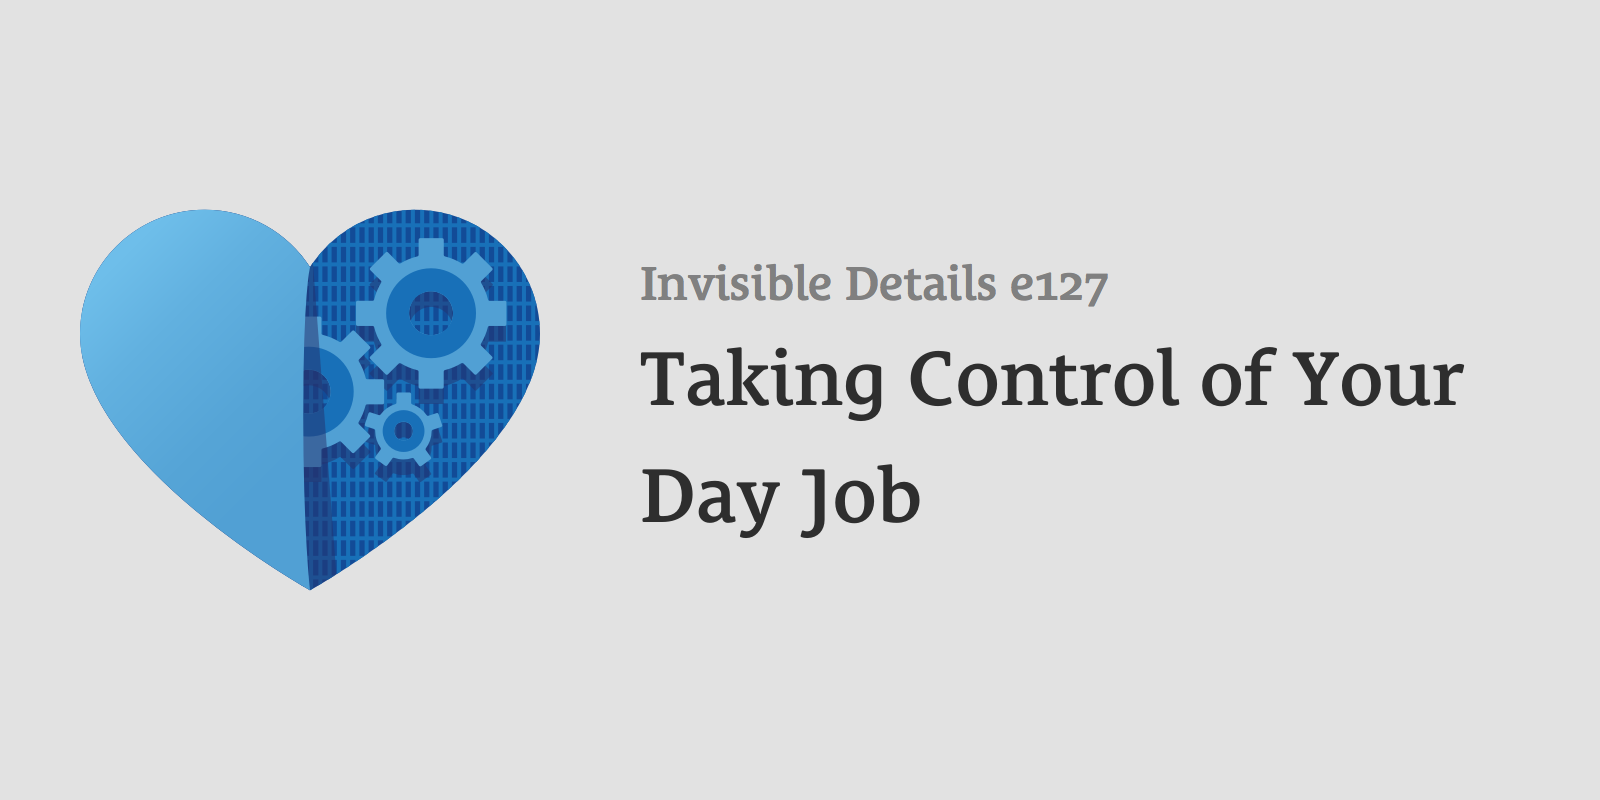 Taking Control of Your Day Job